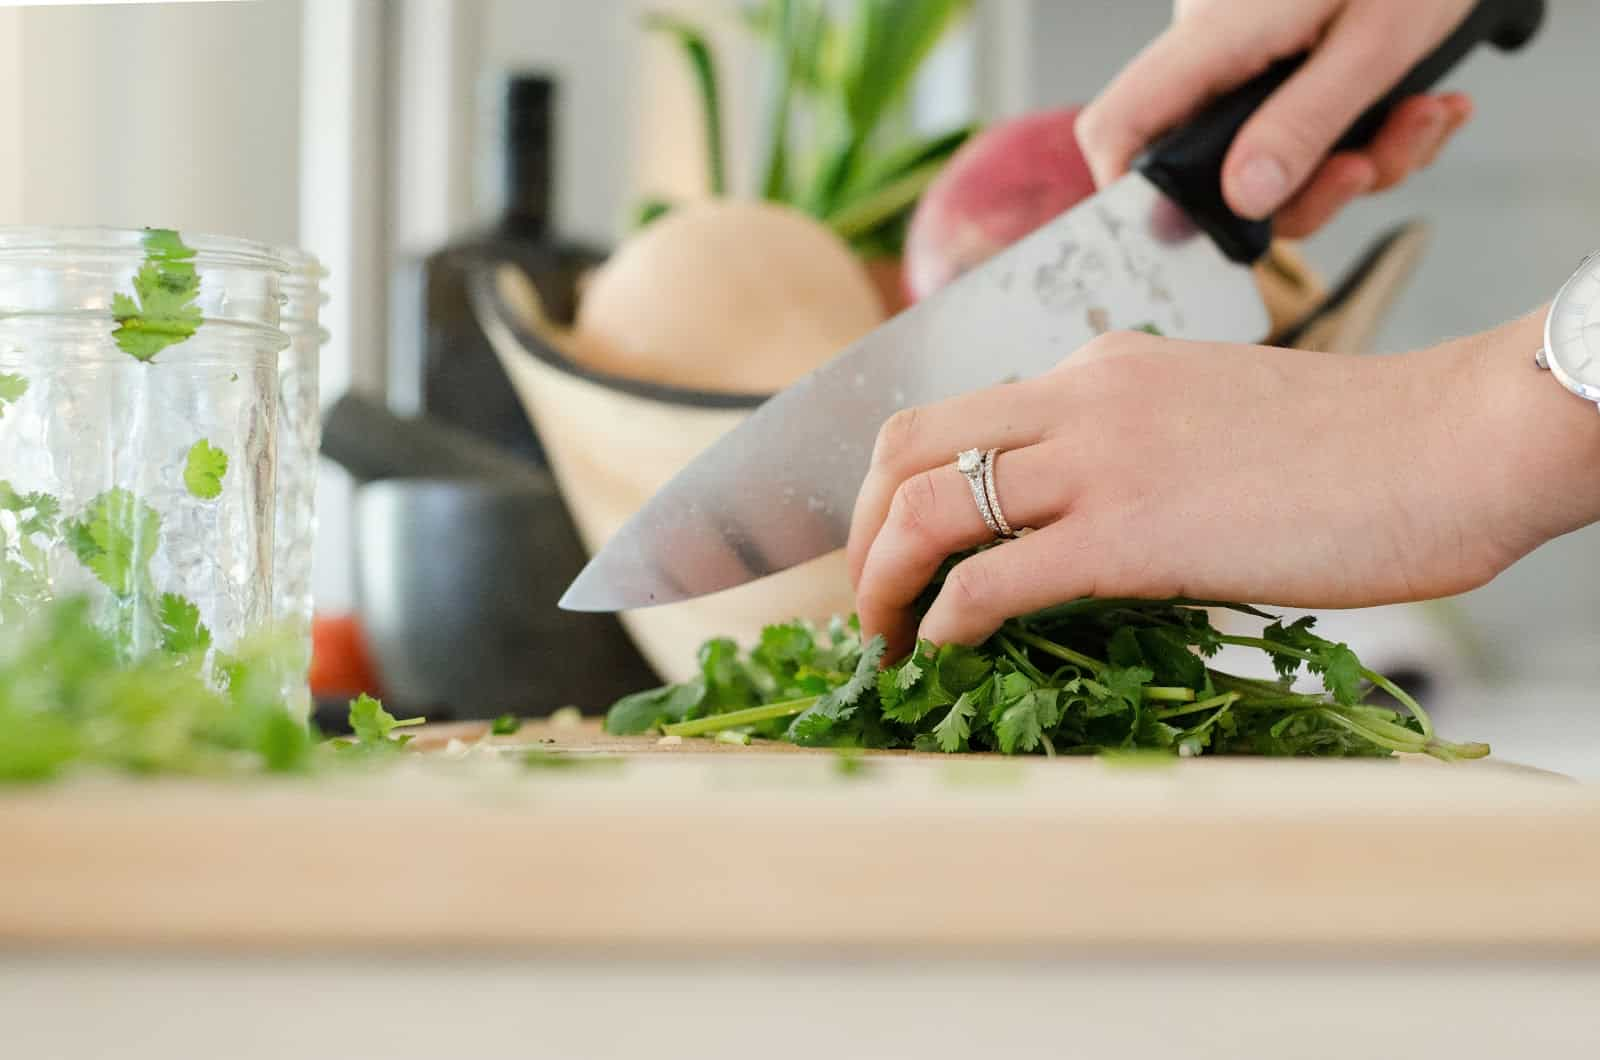 Woman chopping up fresh vegetables on a cutting board